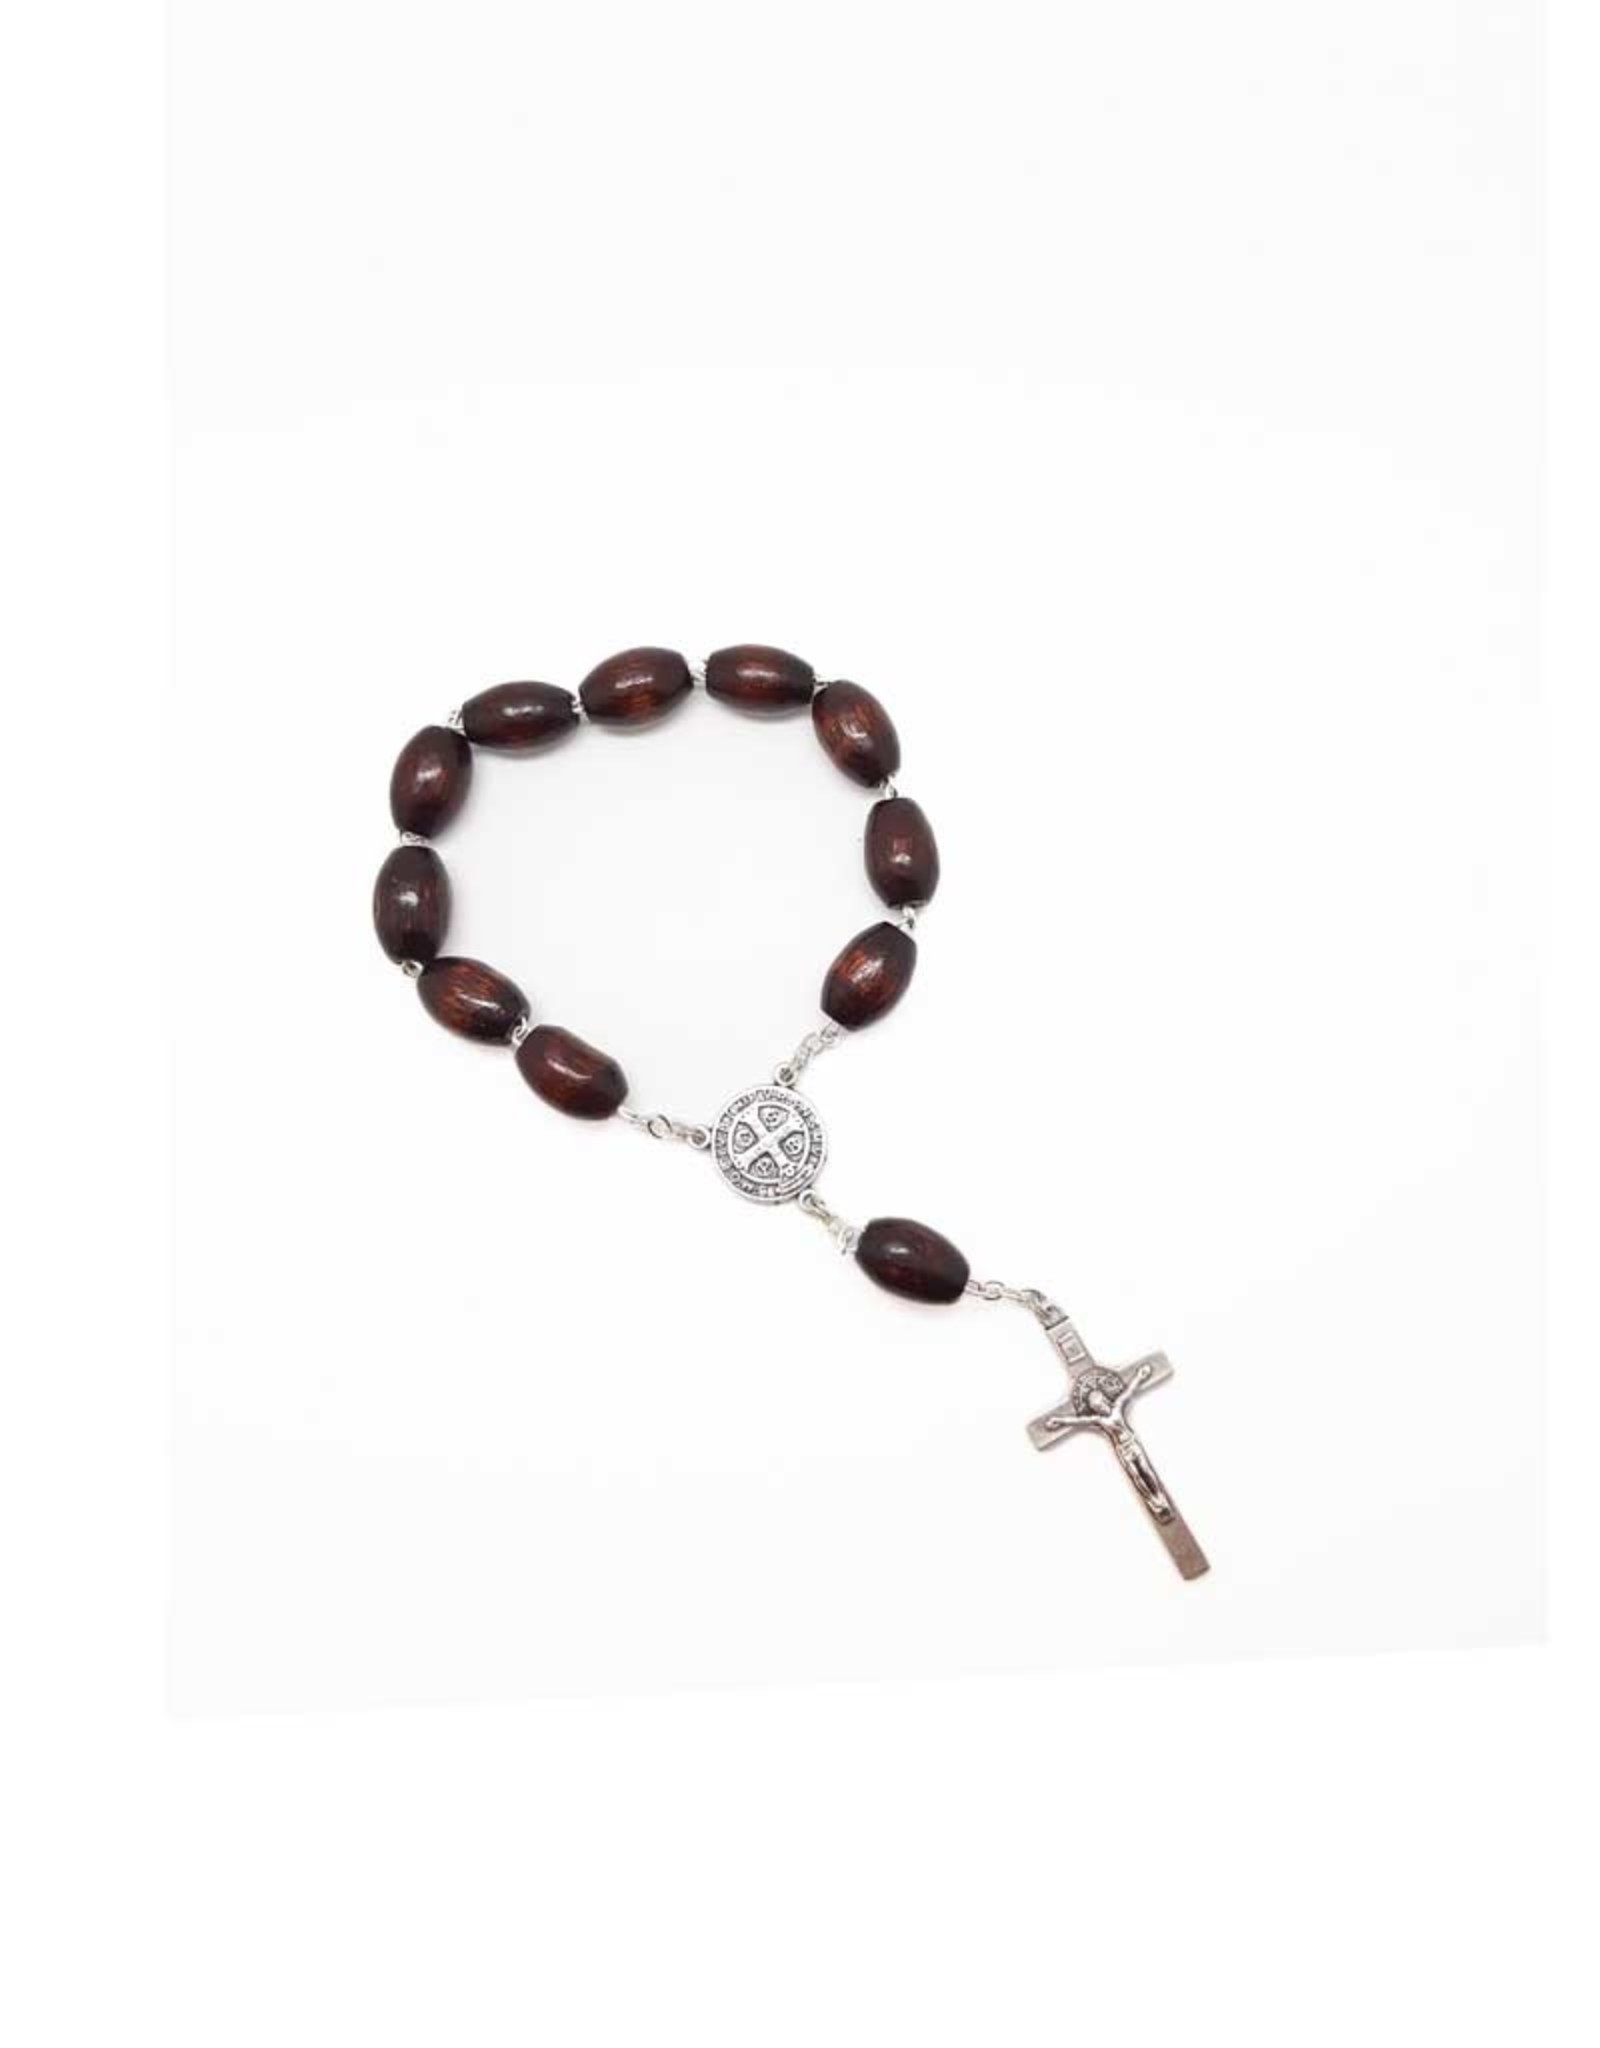 Saint Benedict dark wood rosary